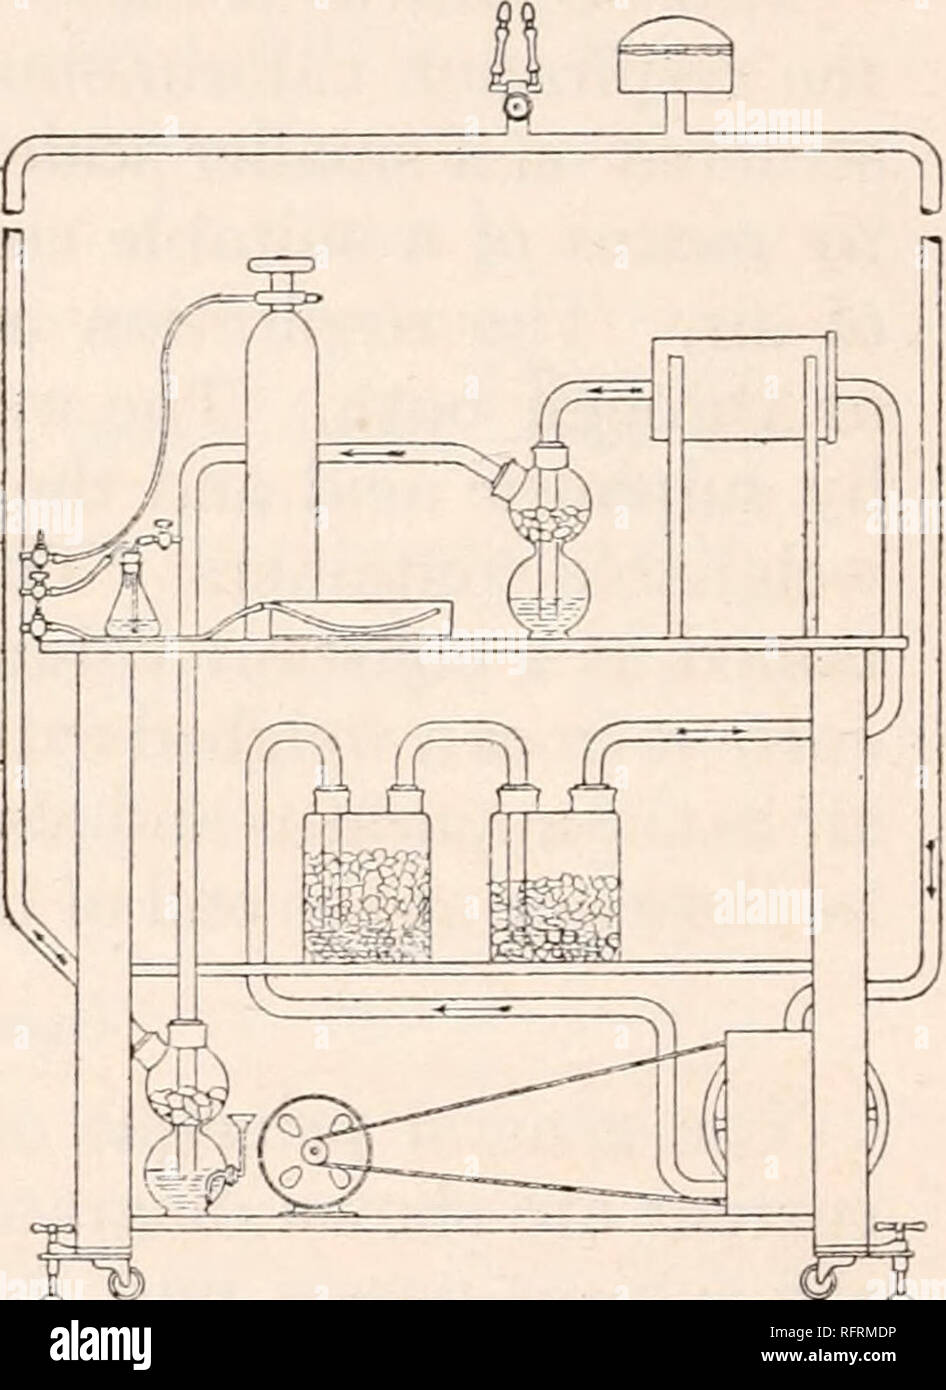 medium resolution of diagrammatic scheme of air circuit and purifying arrangements of tension equalizer unit fig 3 diagram showing arrangement of benedict respiration